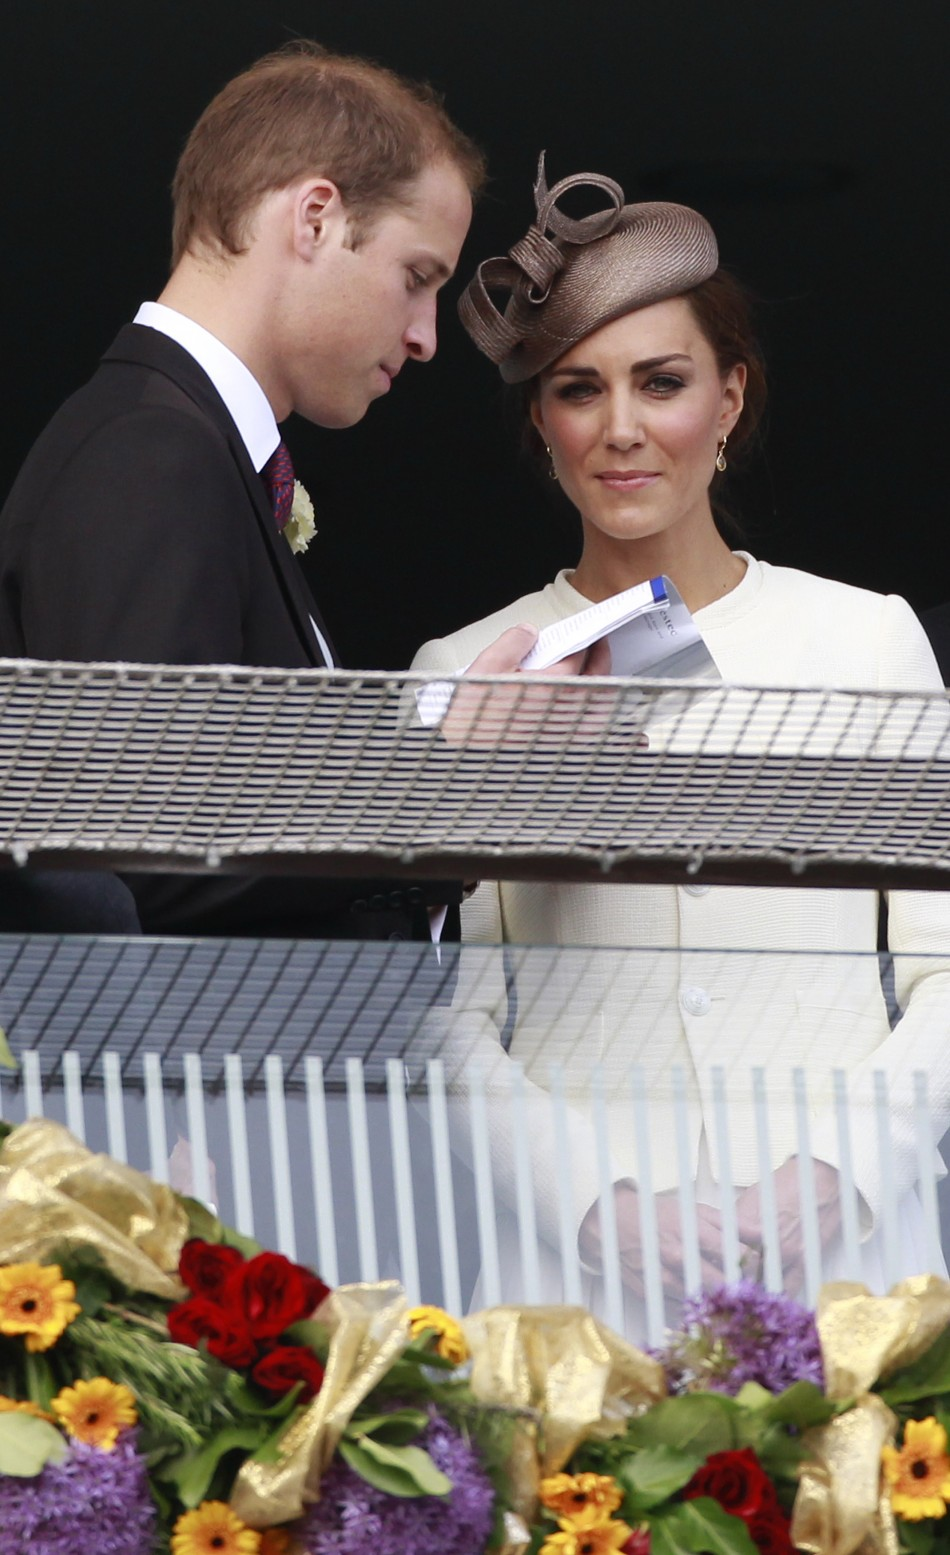 Britain039s Prince William and Catherine, Duchess of Cambridge, watch the racecourse after Queen Elizabeth039s horse Carlton House lost the Epsom Derby at Epsom Racecourse in southern England